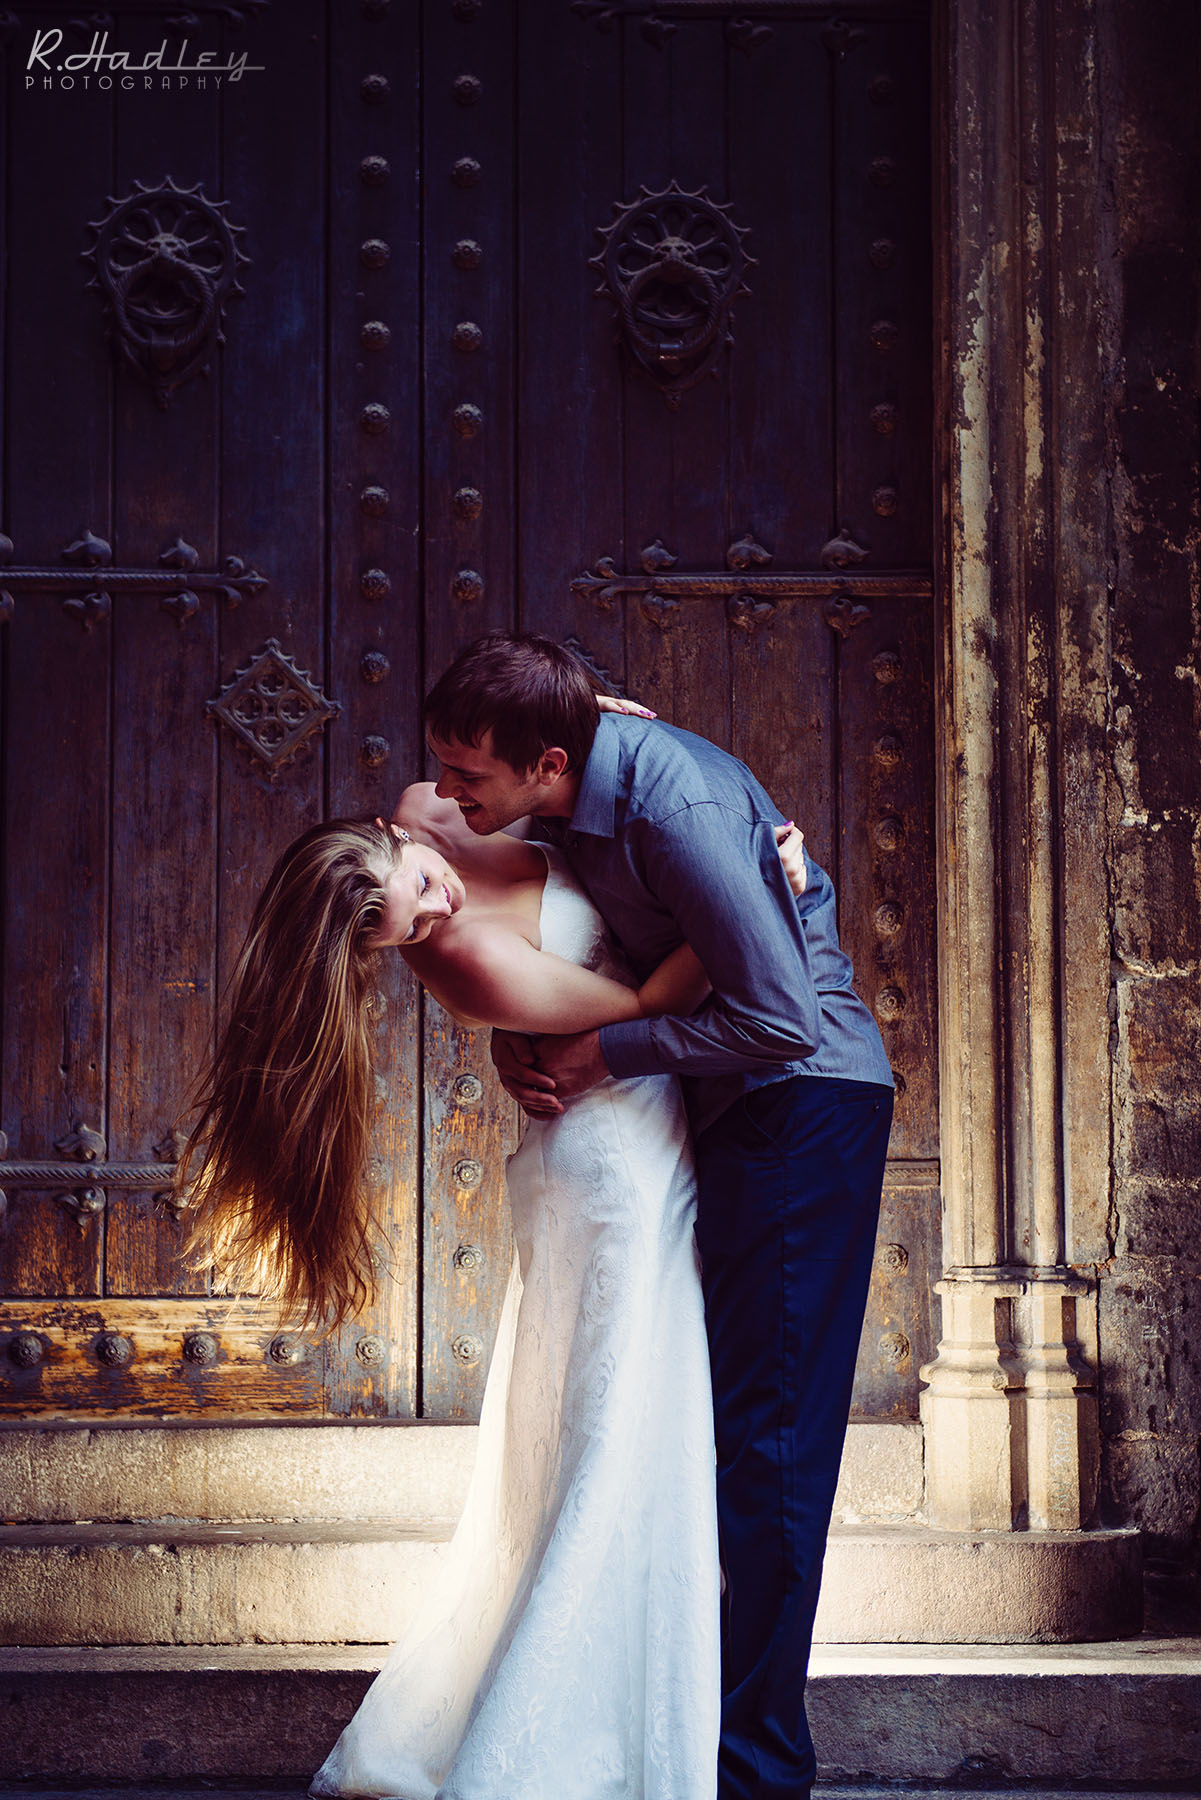 Wedding couple in Barcelona for a photo shoot